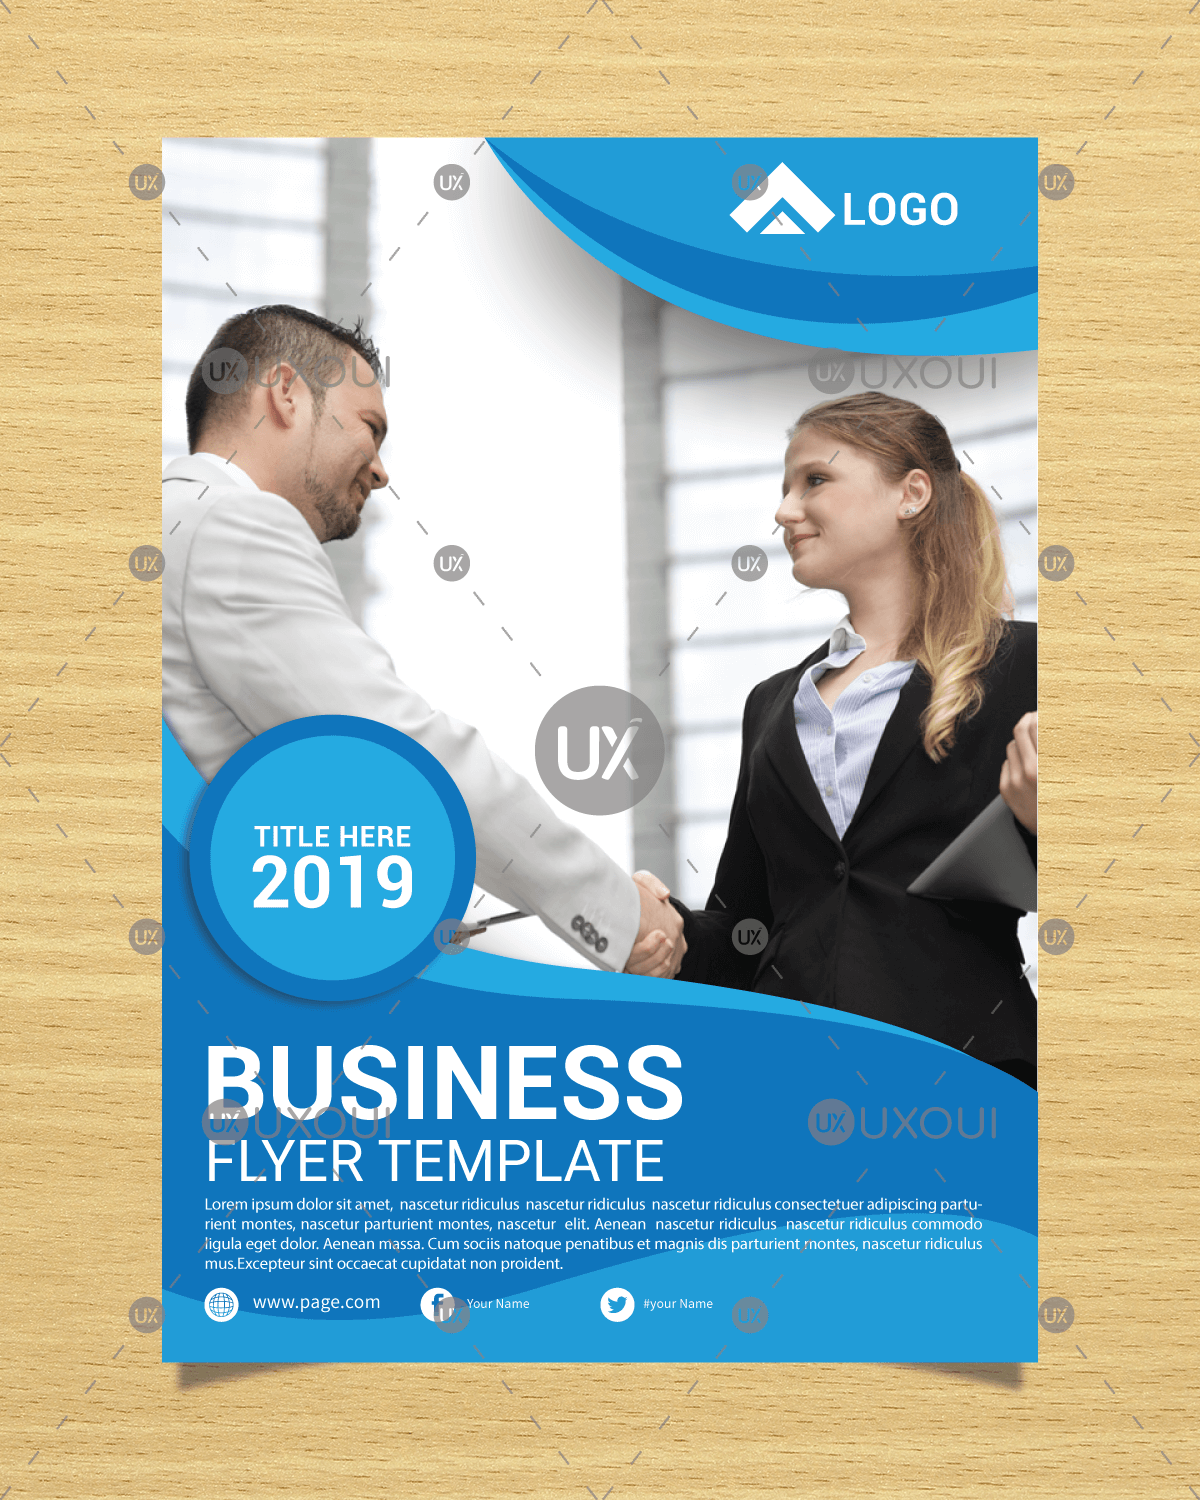 free blue wavy corporate business flyer template design vector with